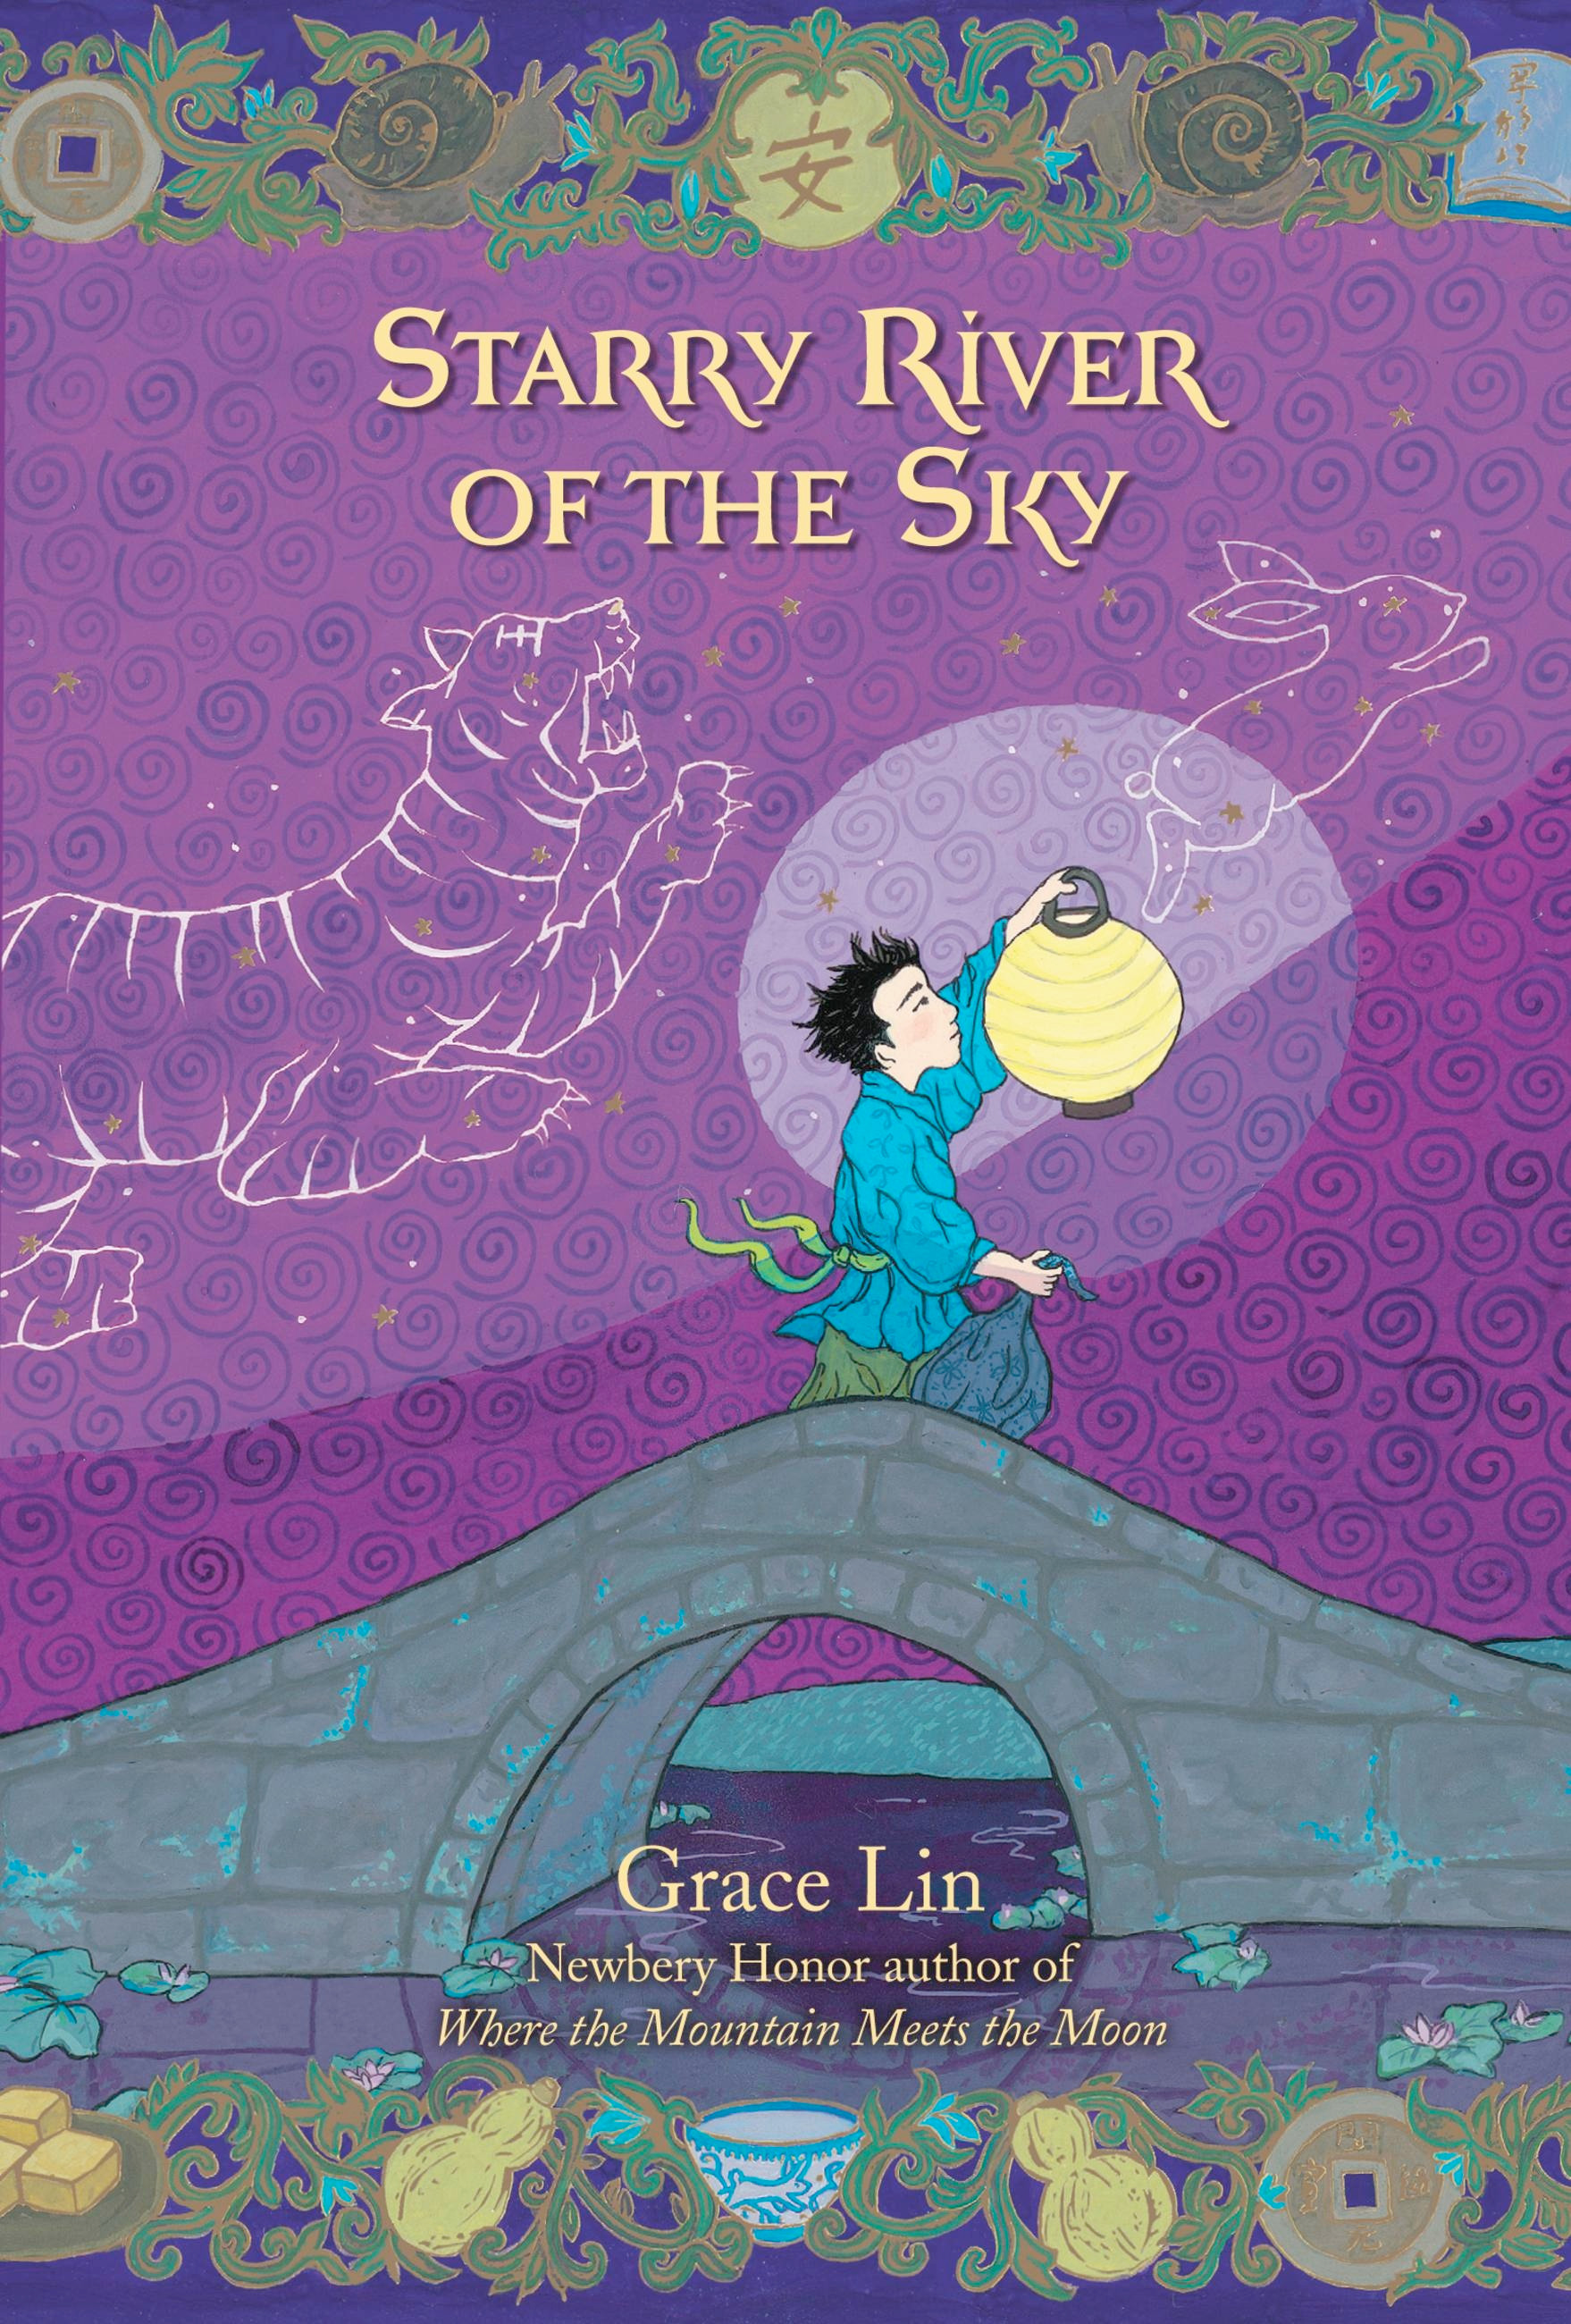 1321. Starry River of the Sky/Grace Lin/2012